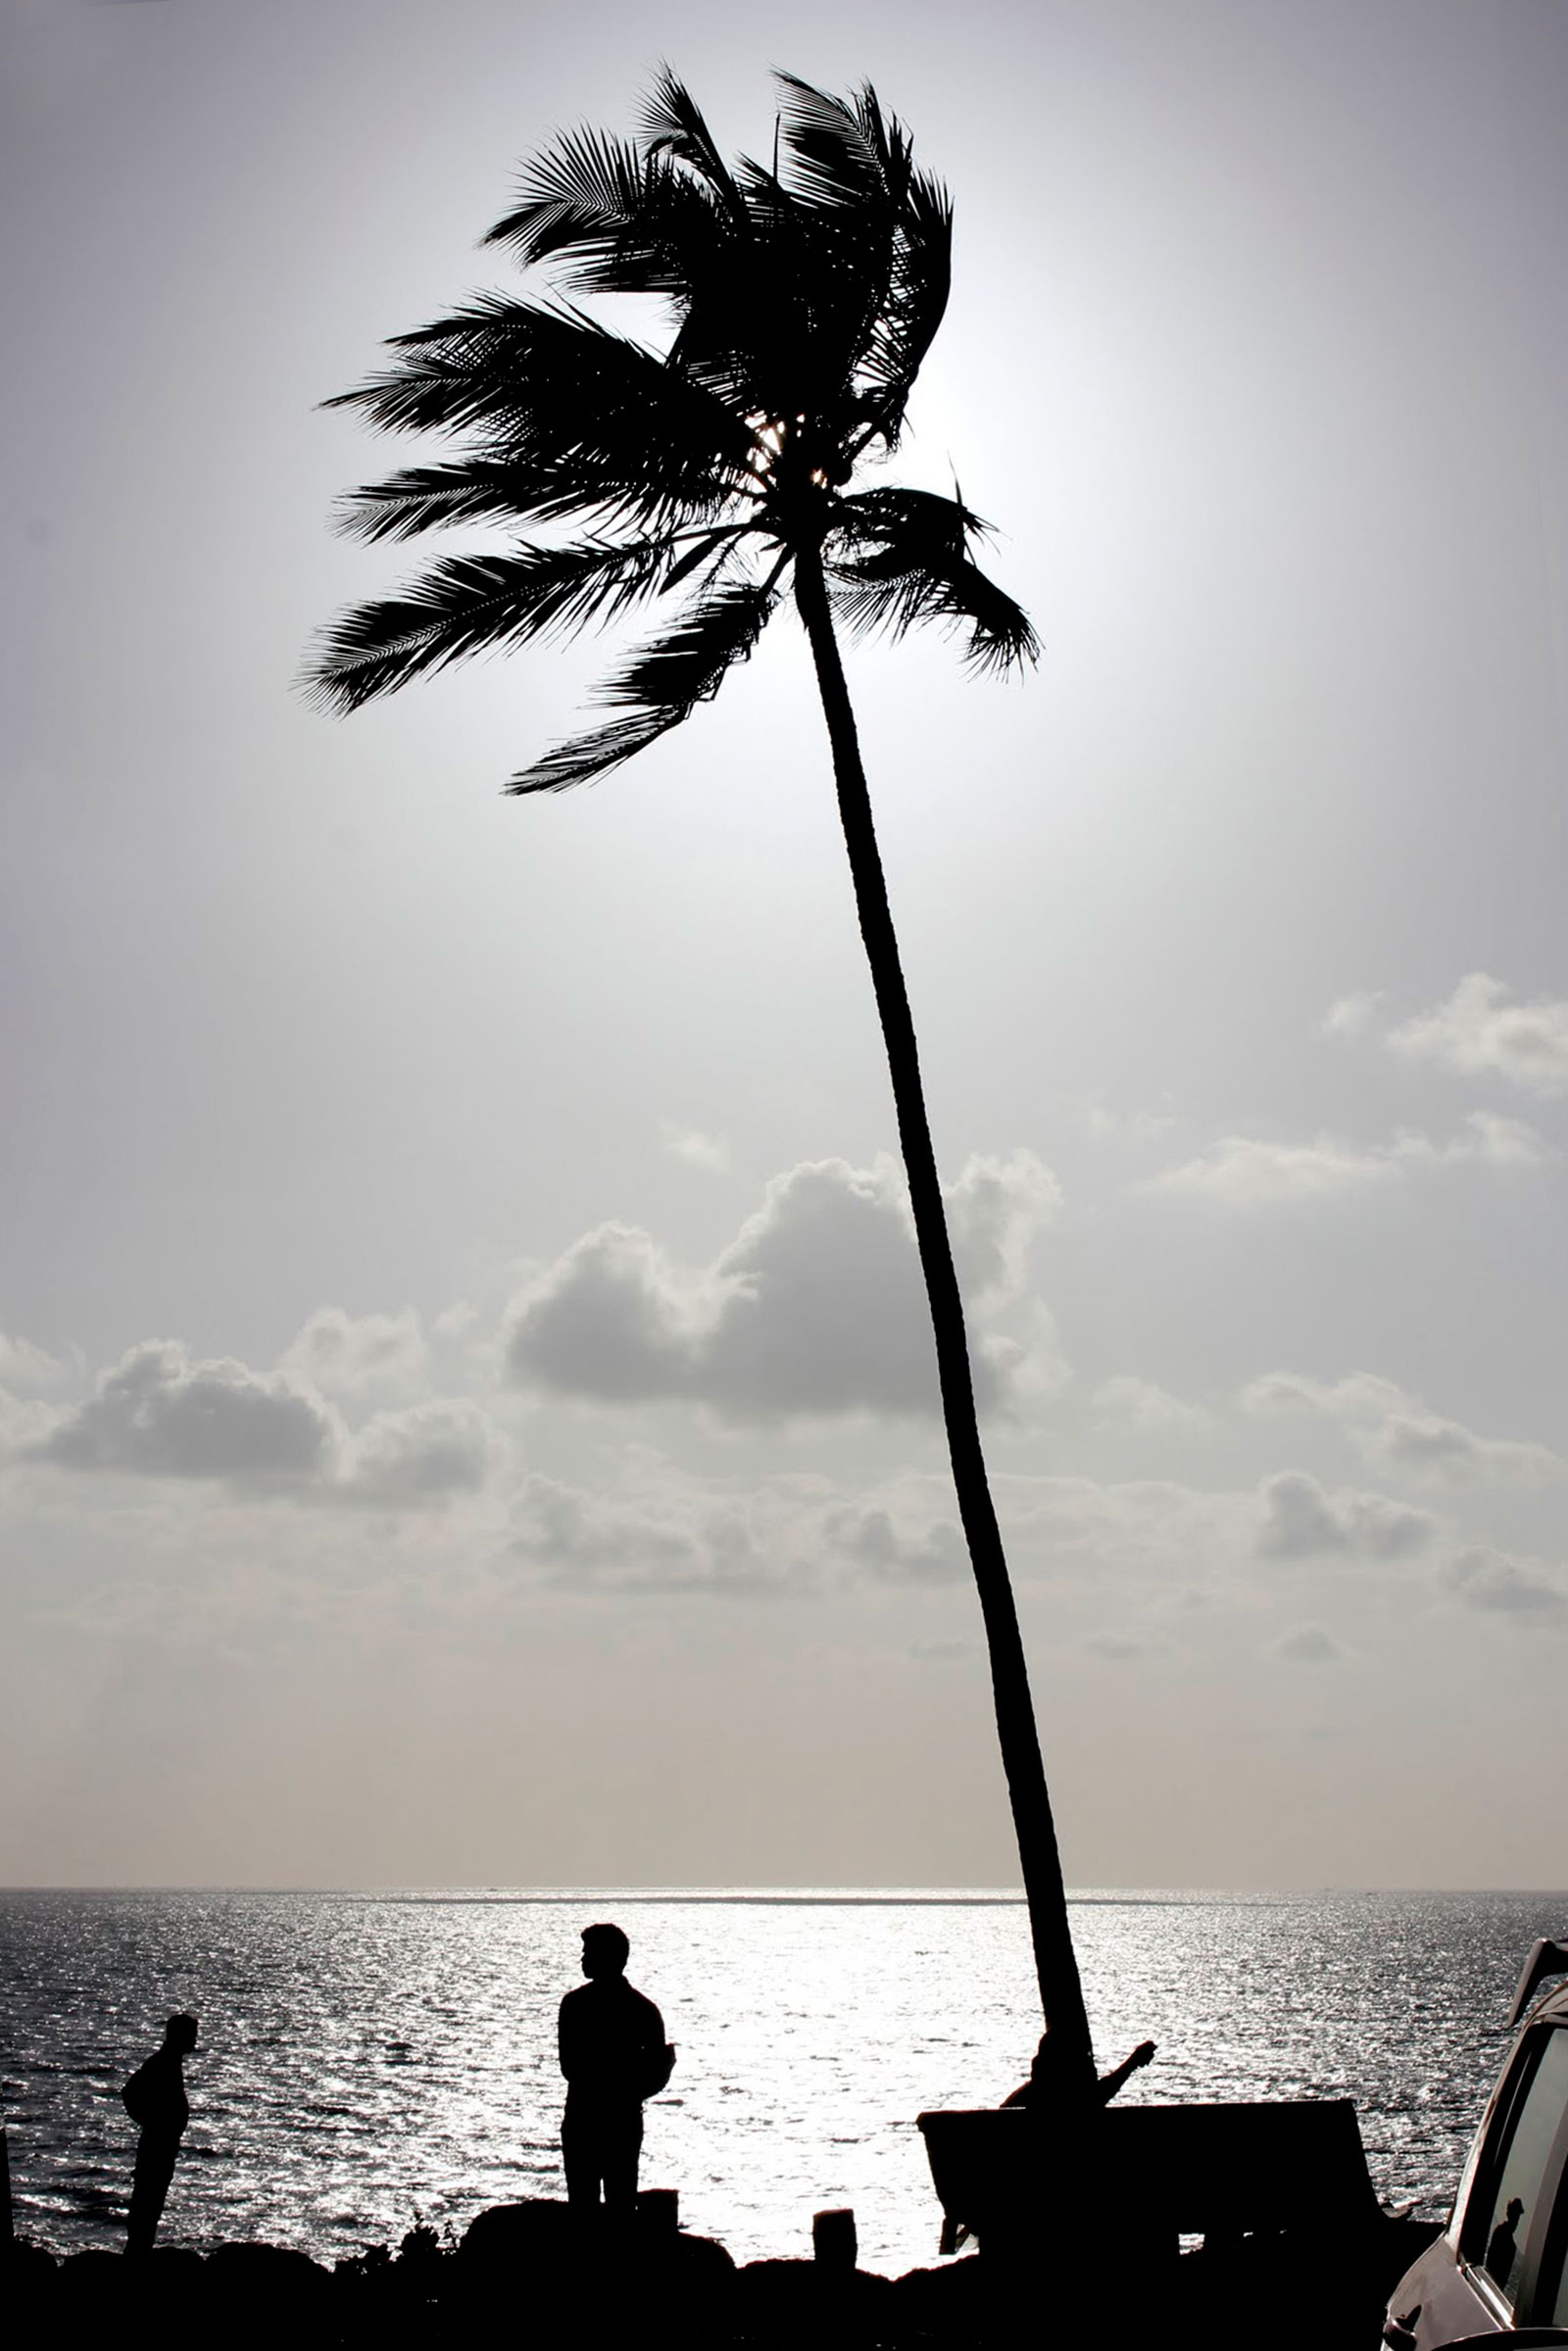 Black and white silhouette of man standing under coconut tree by the sea shore